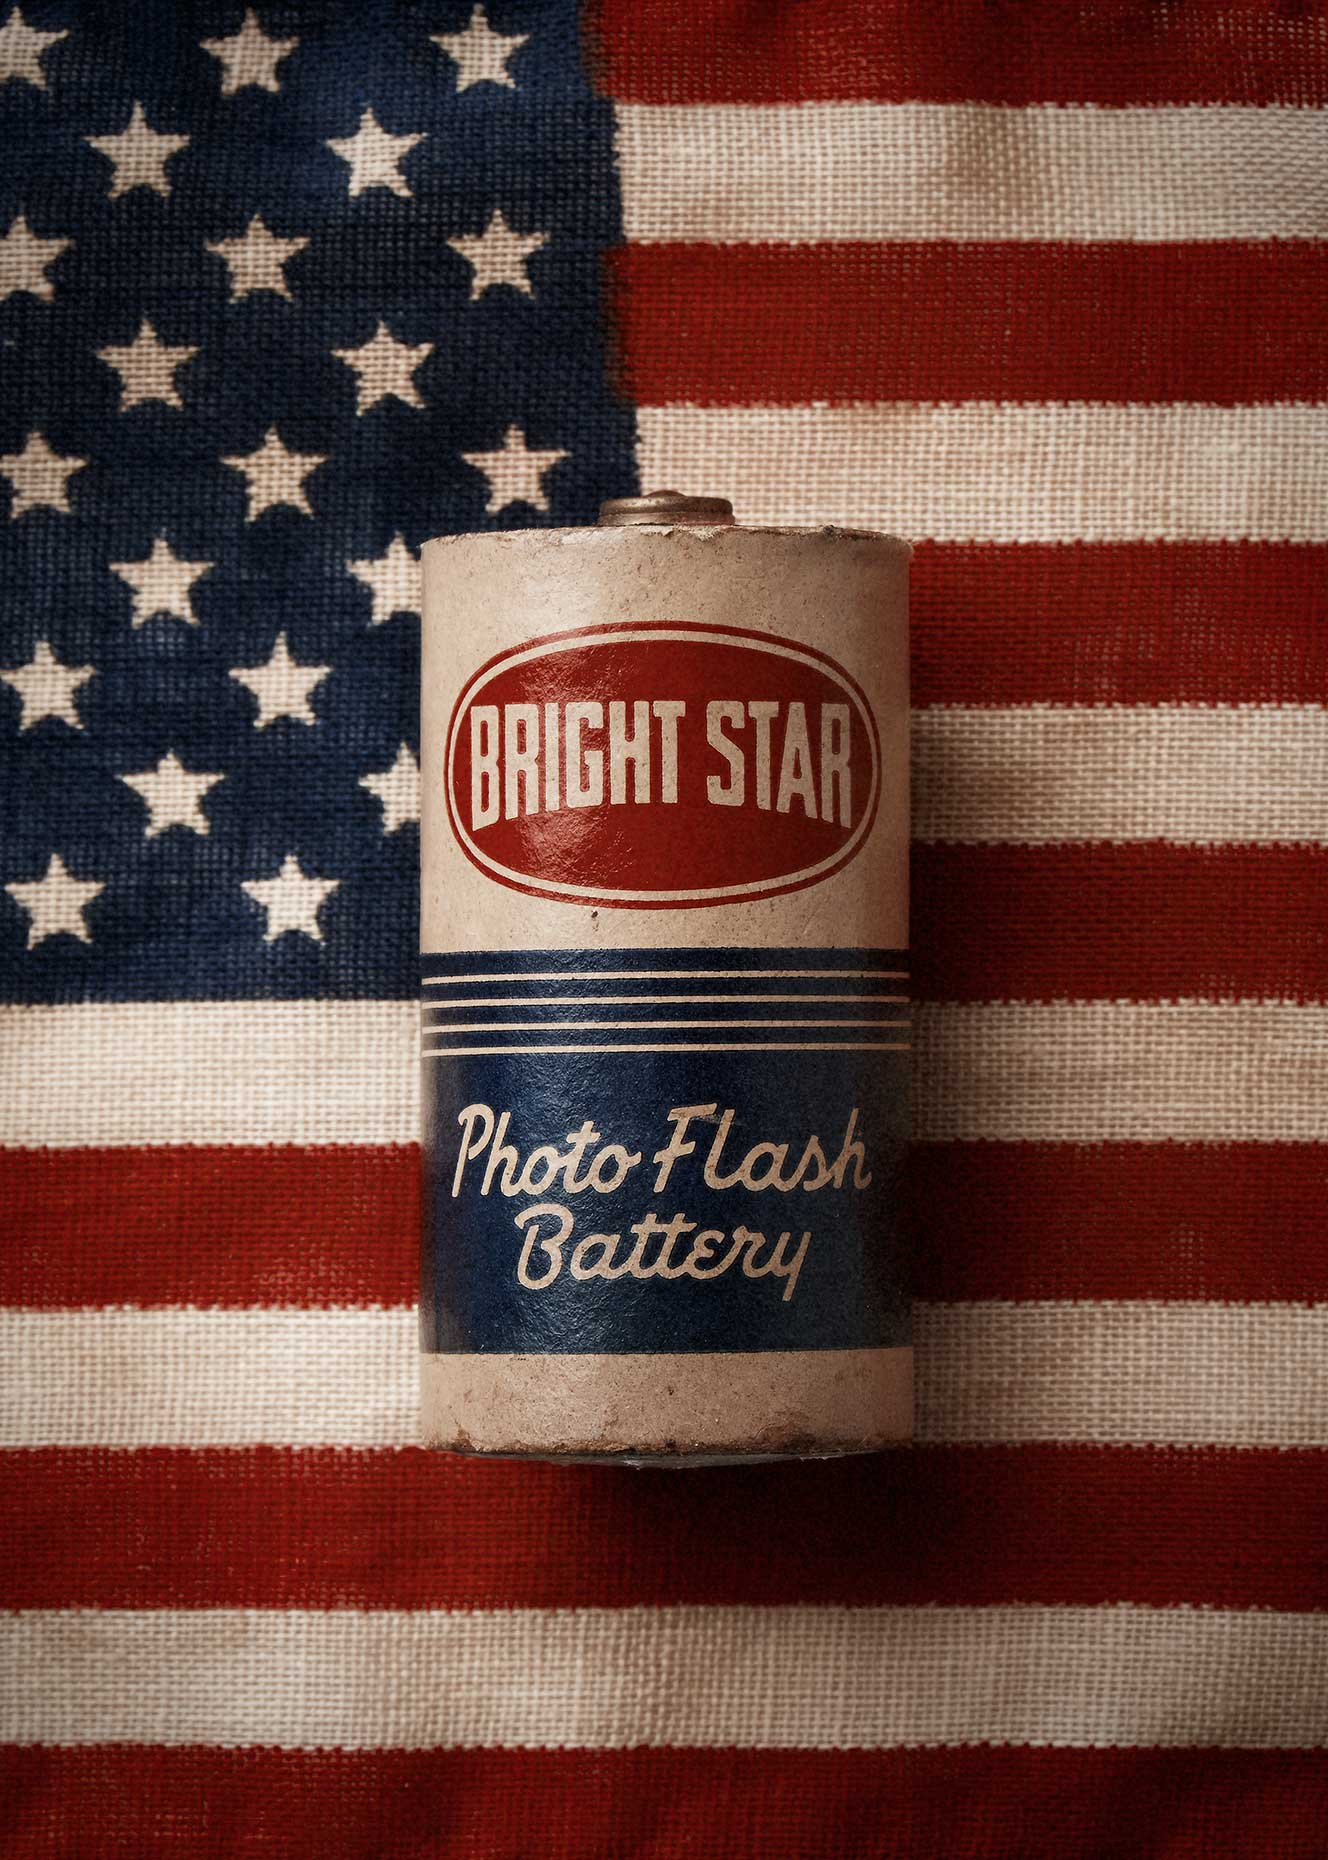 Old battery on the american flag